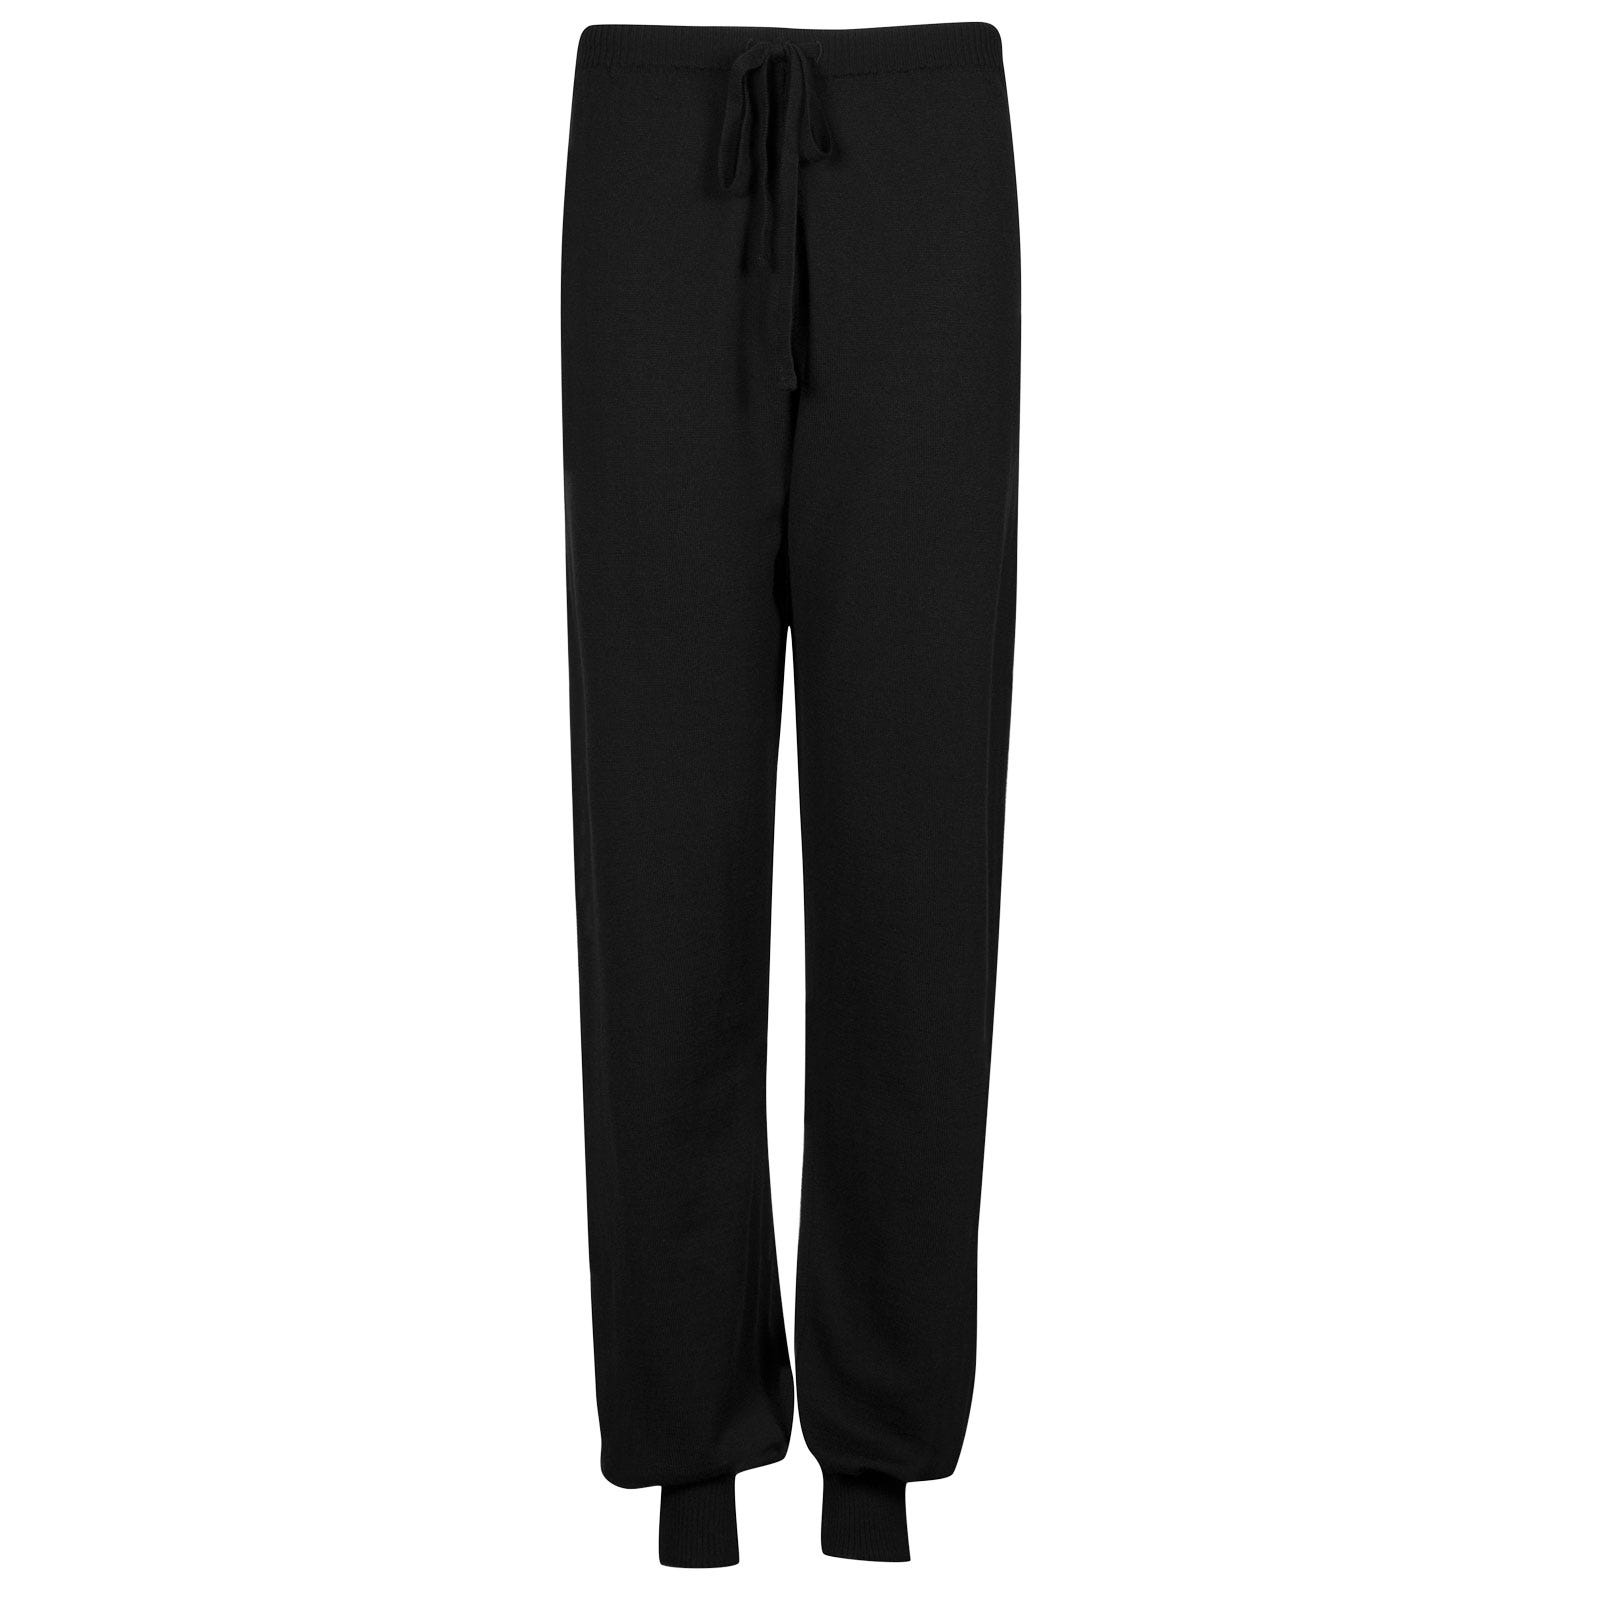 John Smedley Lock Merino Wool Trouser in Black-L